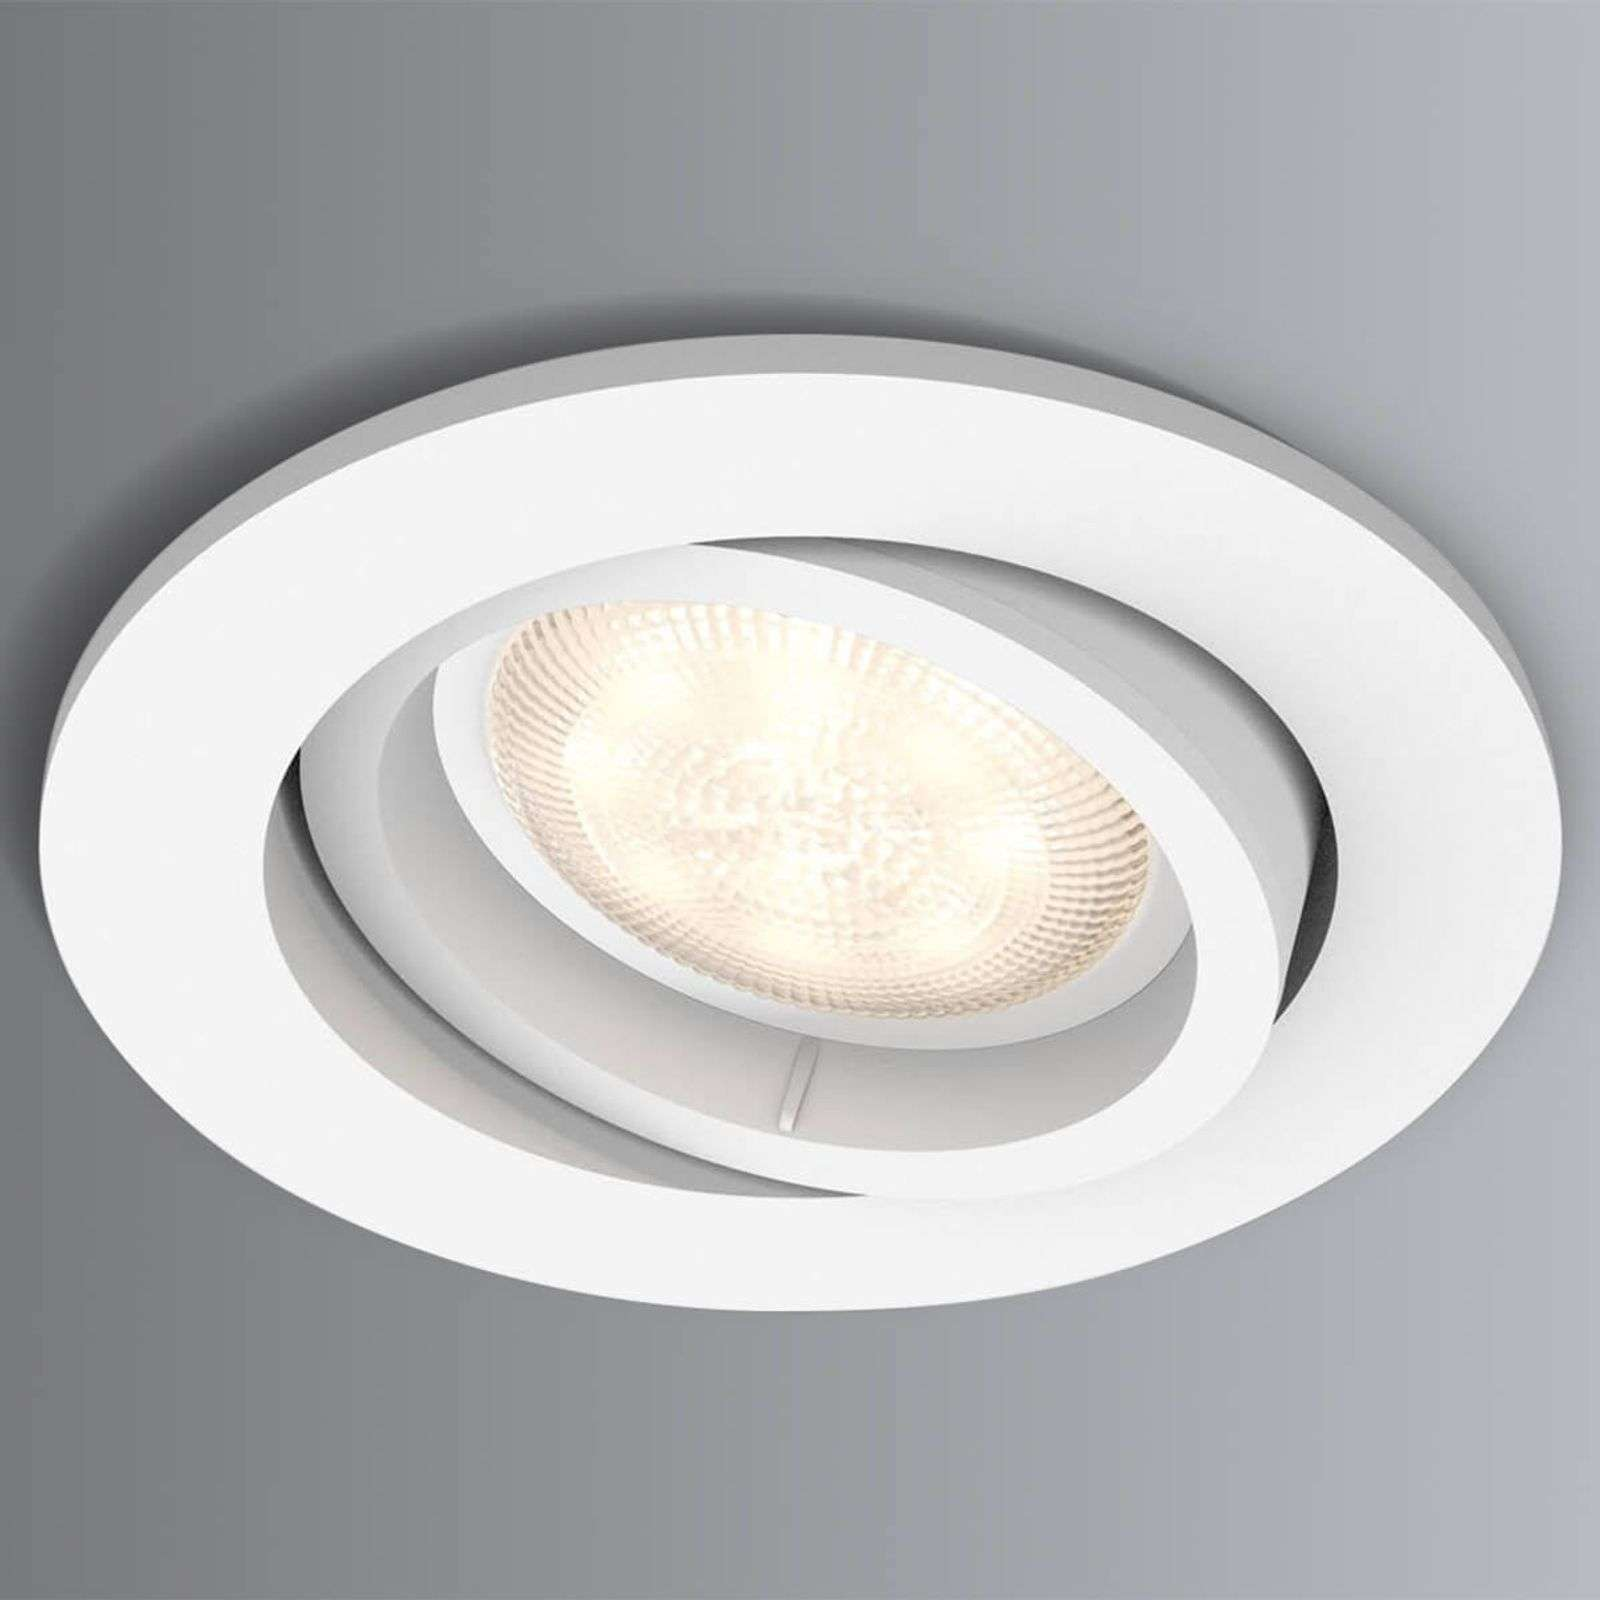 LED inbouwspot Shellbark met Warmglow effect, wit